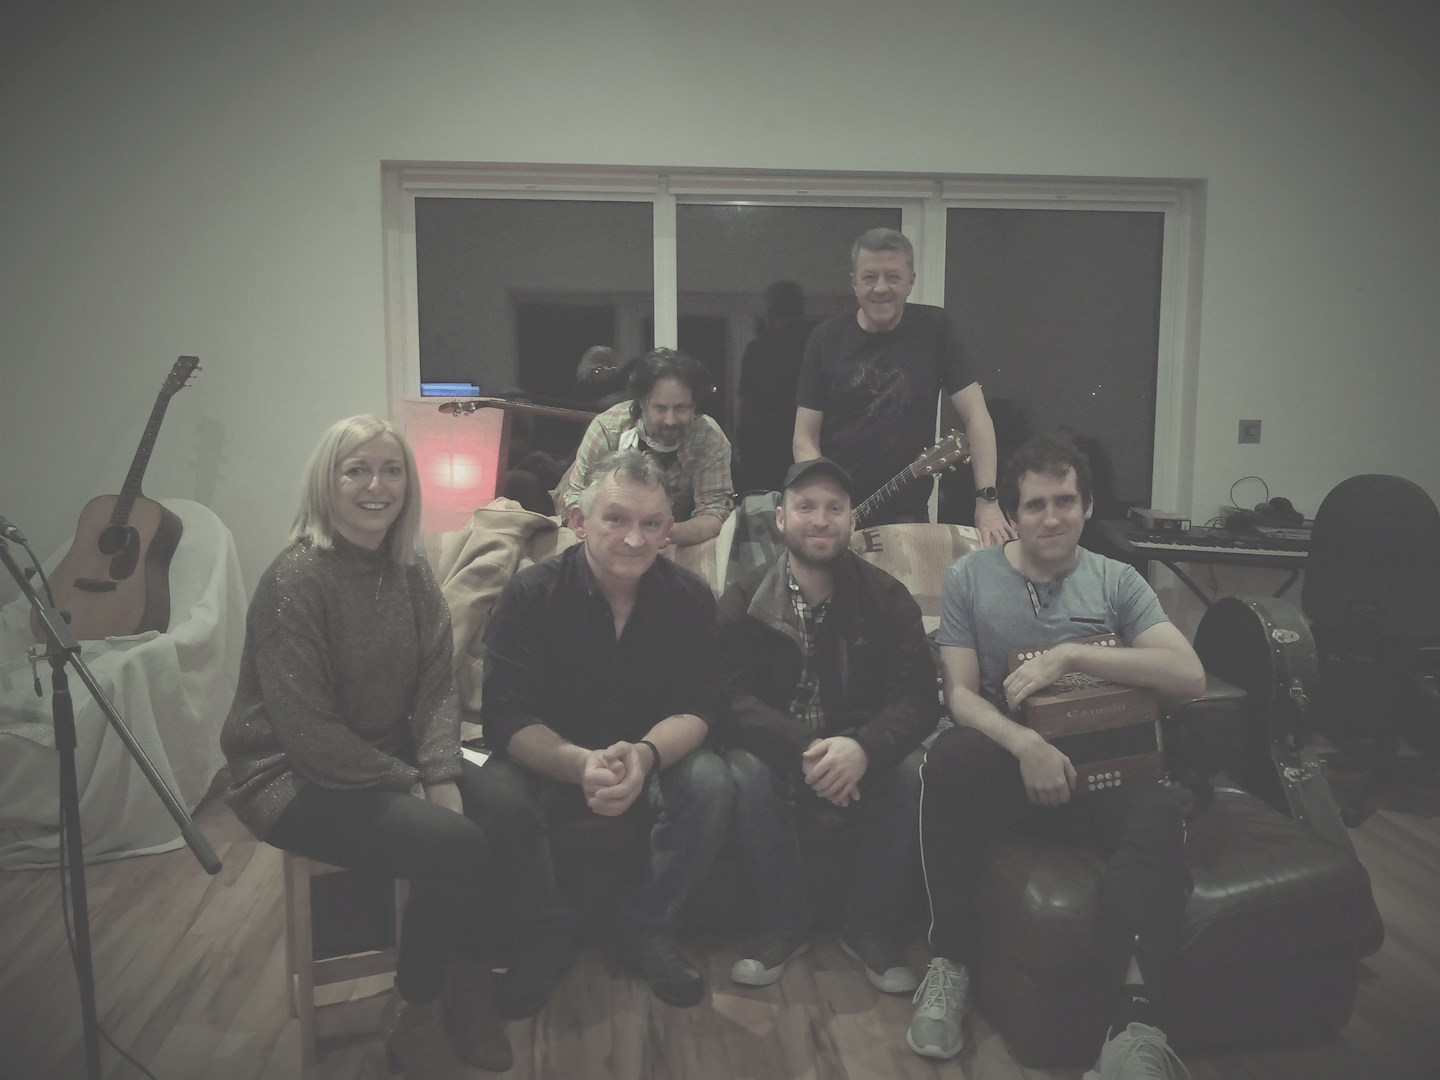 CANCELLED - Enda Haran & Band Woodmount Sessions